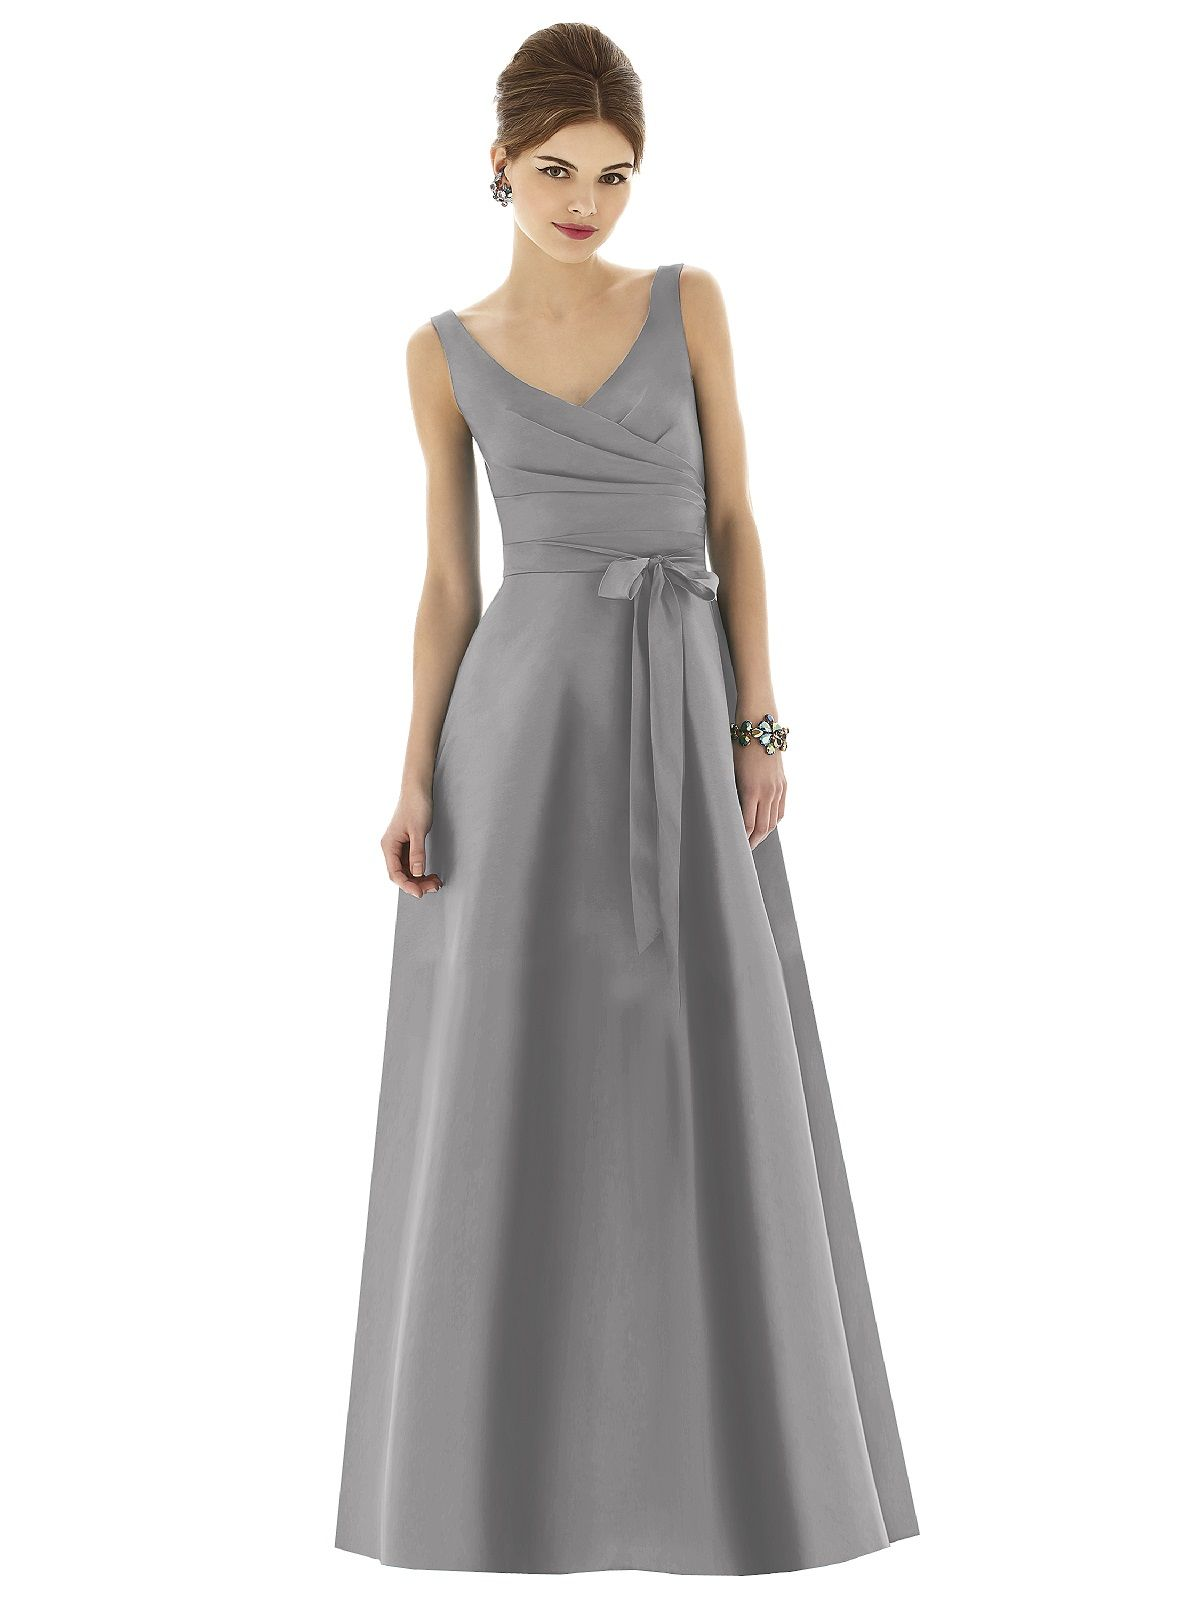 Your caption here bridesmaid dresses pinterest alfred sung the alfred sung bridesmaid collection offers fresh contemporary bridesmaid dresses while keeping your budget in mind ombrellifo Choice Image